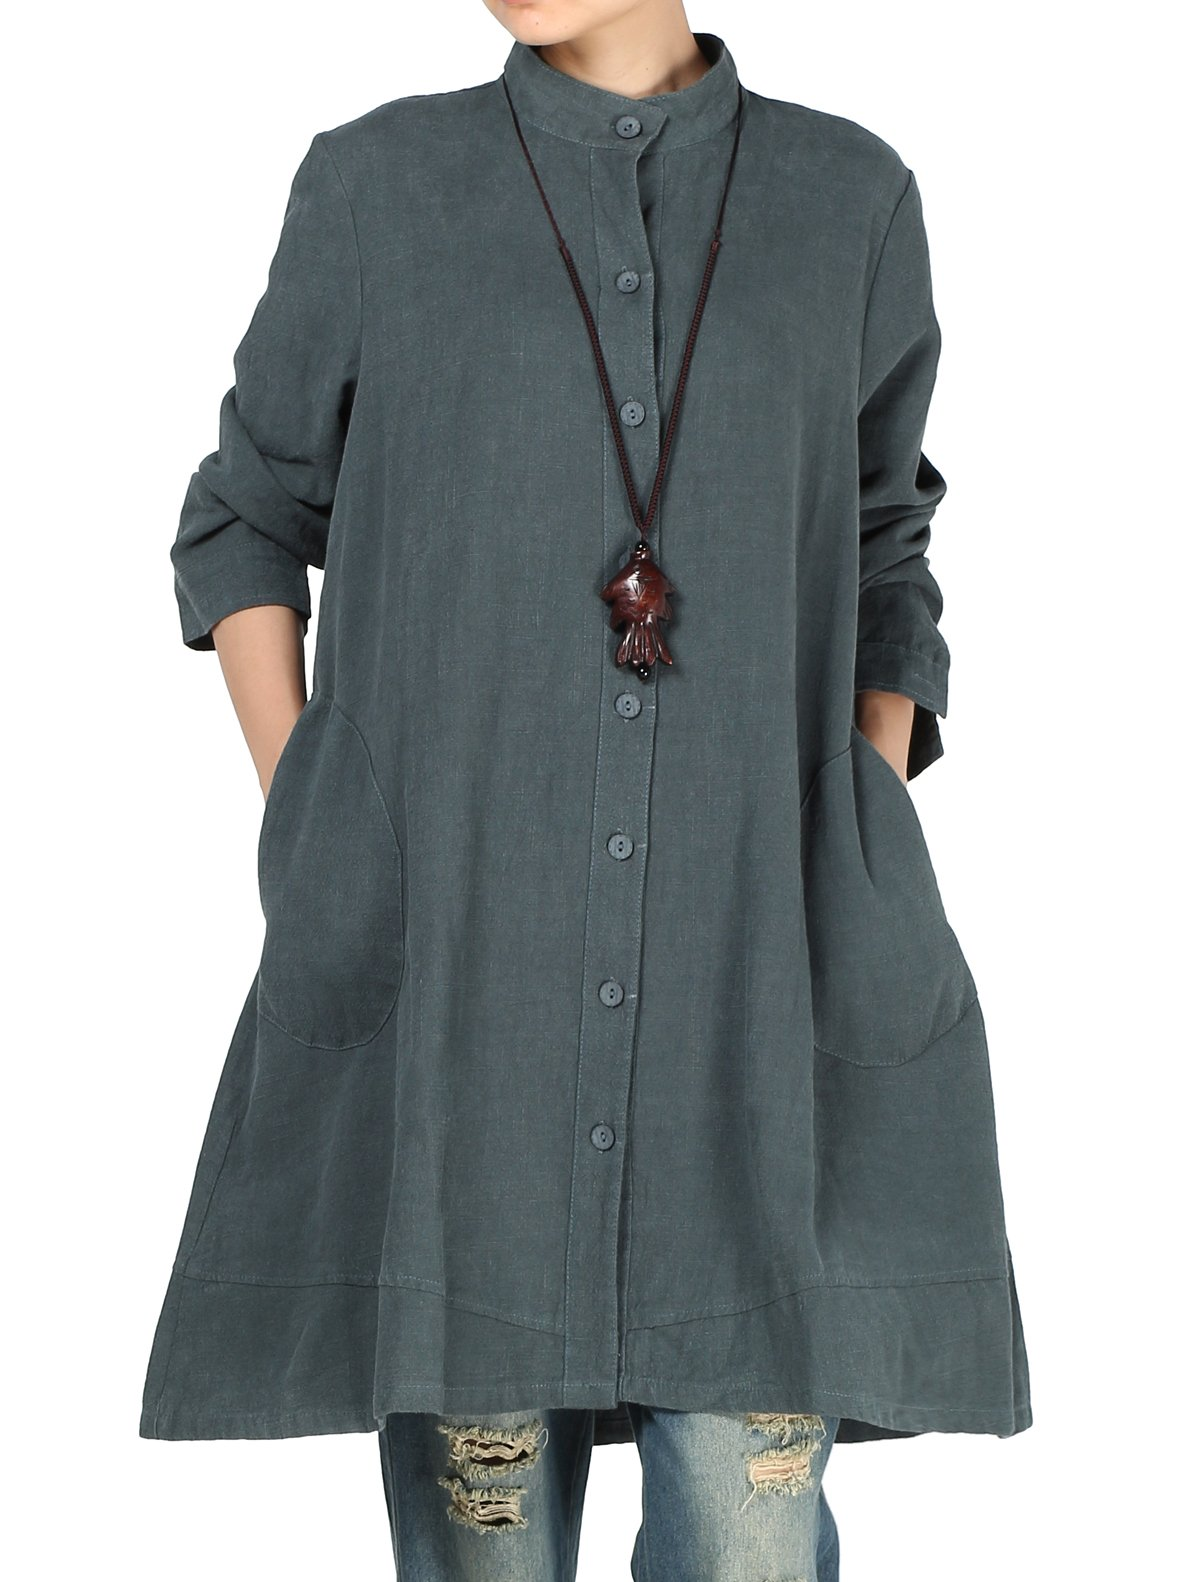 Mordenmiss Women's Cotton Linen Full Front Buttons Jacket Outfit with Pockets Style 1 L Dark Green